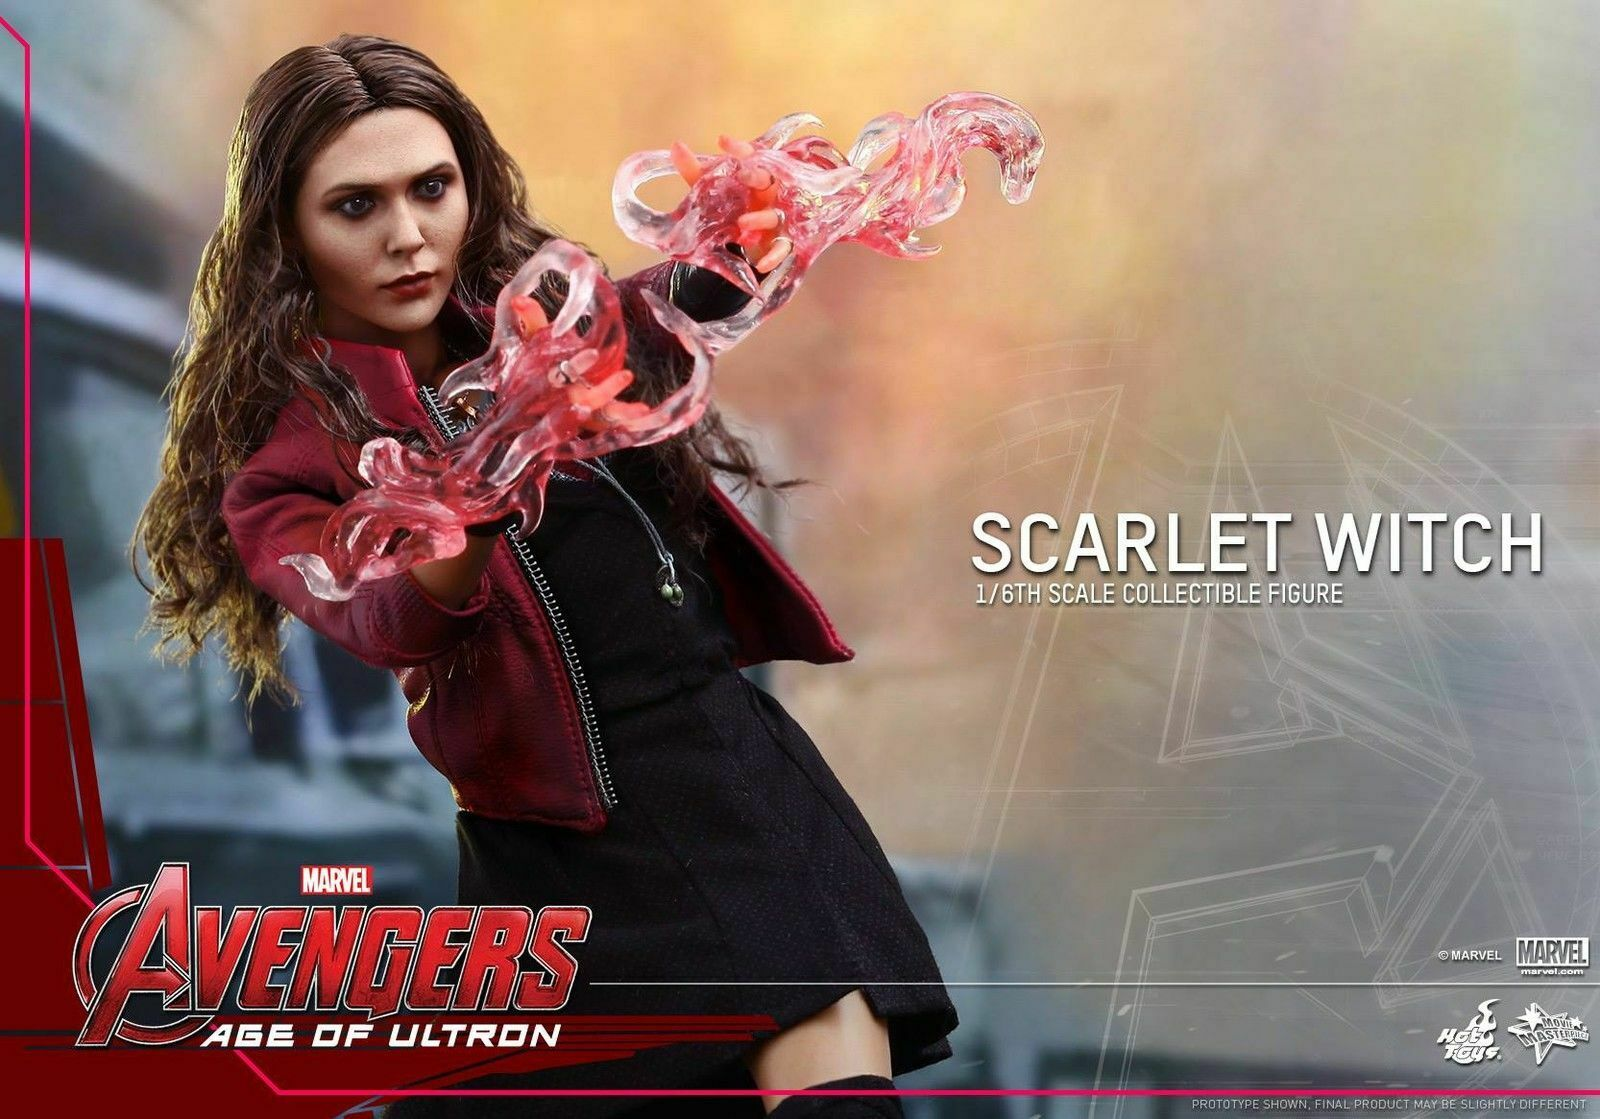 (EE. UU.) HOT TOYS 1 6 MMS301 MARVEL VENGADORES SCocheLET WITCH figura remitente original